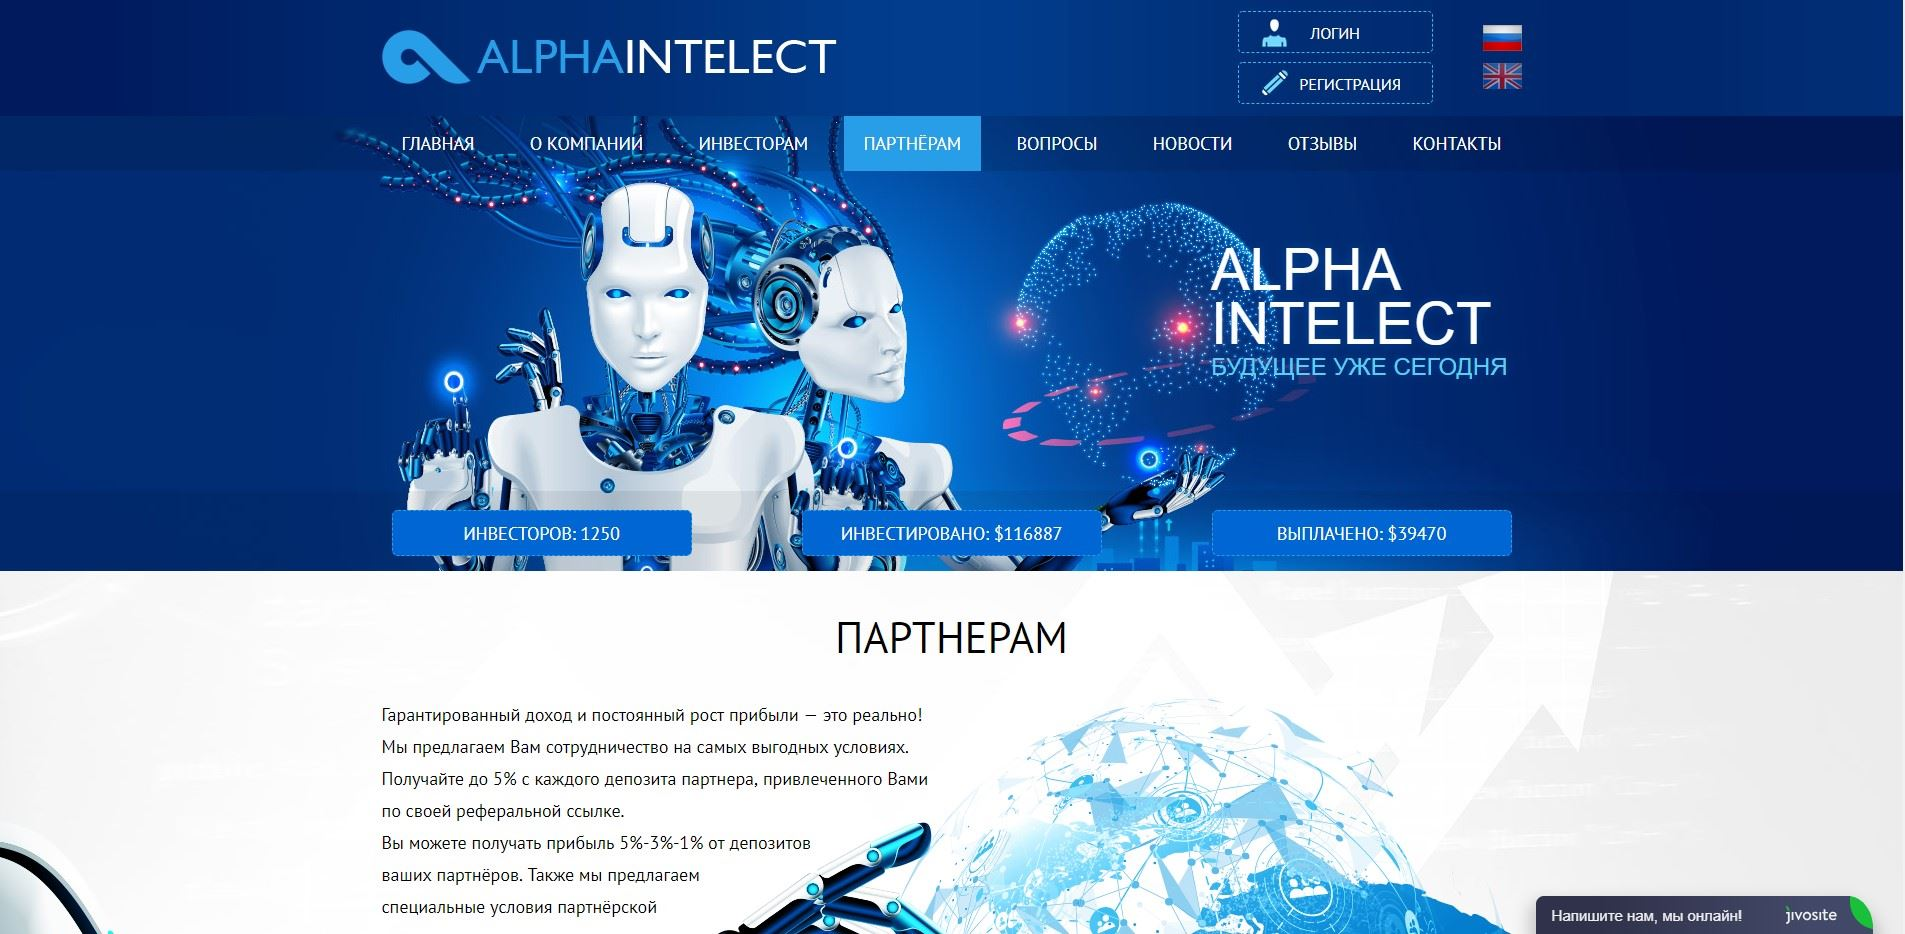 Alpha intelect